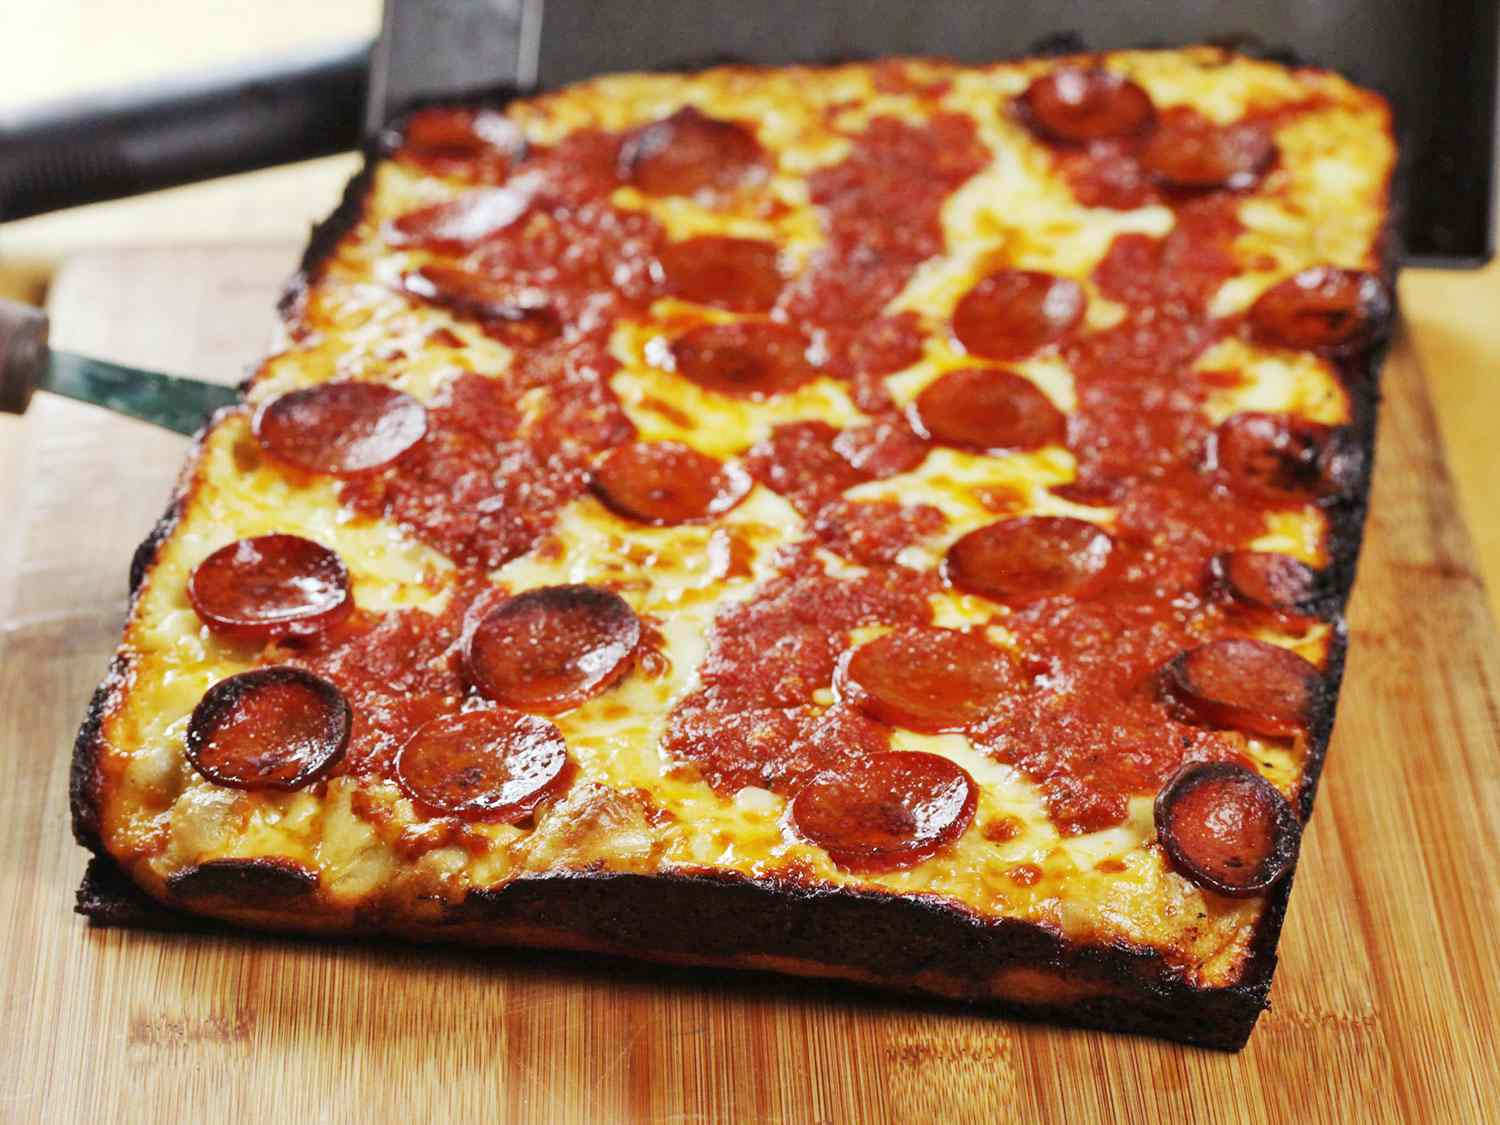 A Detroit-style pizza resting on a cutting board